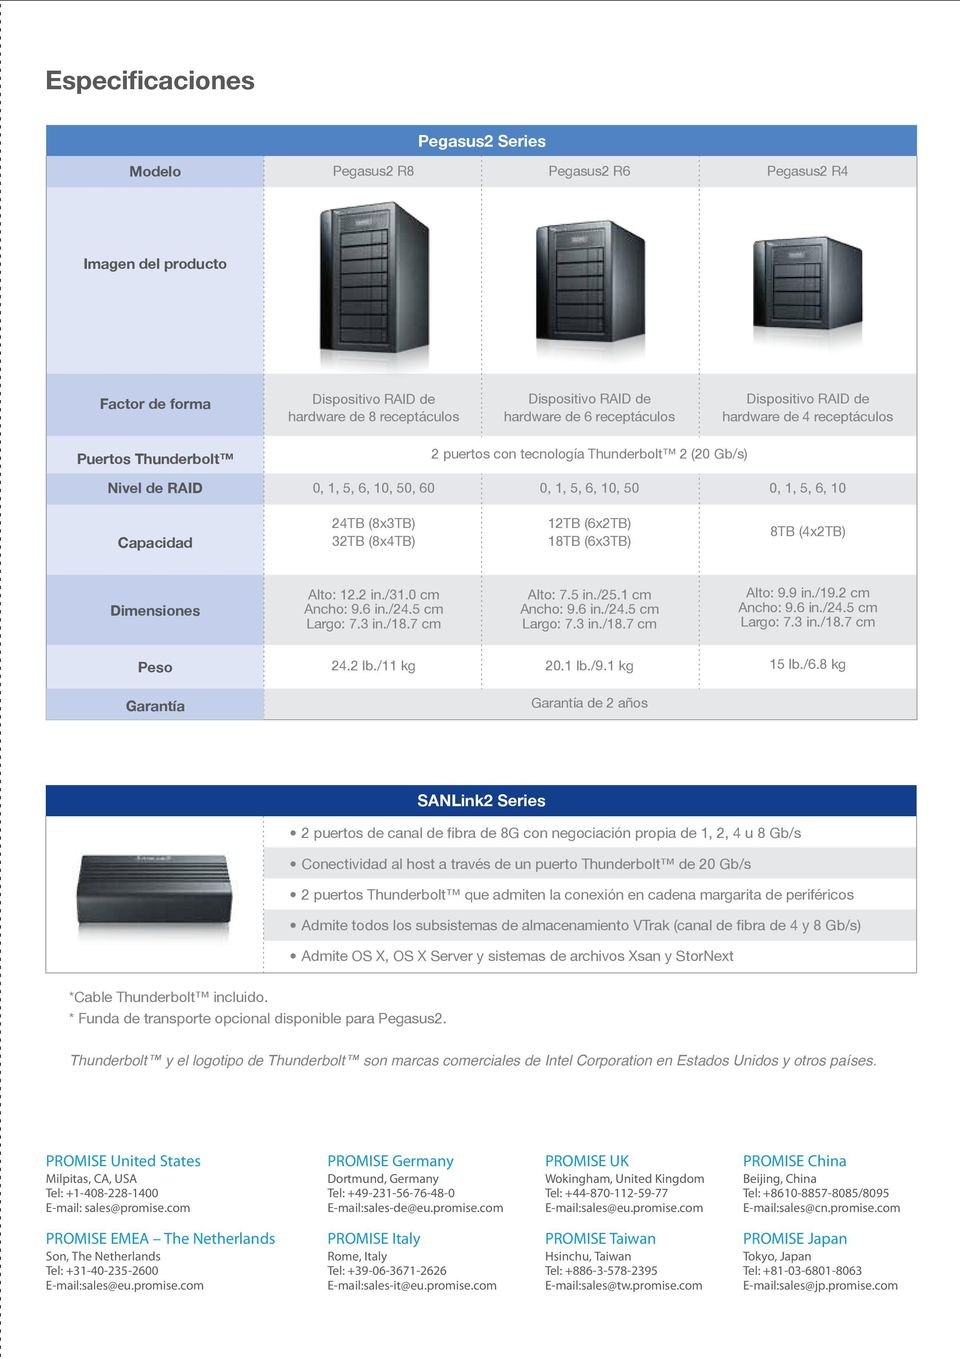 Capacidad 24TB (8x3TB) 32TB (8x4TB) 12TB (6x2TB) 18TB (6x3TB) 8TB (4x2TB) Dimensiones Alto: 12.2 in./31.0 cm Ancho: 9.6 in./24.5 cm Largo: 7.3 in./18.7 cm Alto: 7.5 in./25.1 cm Ancho: 9.6 in./24.5 cm Largo: 7.3 in./18.7 cm Alto: 9.